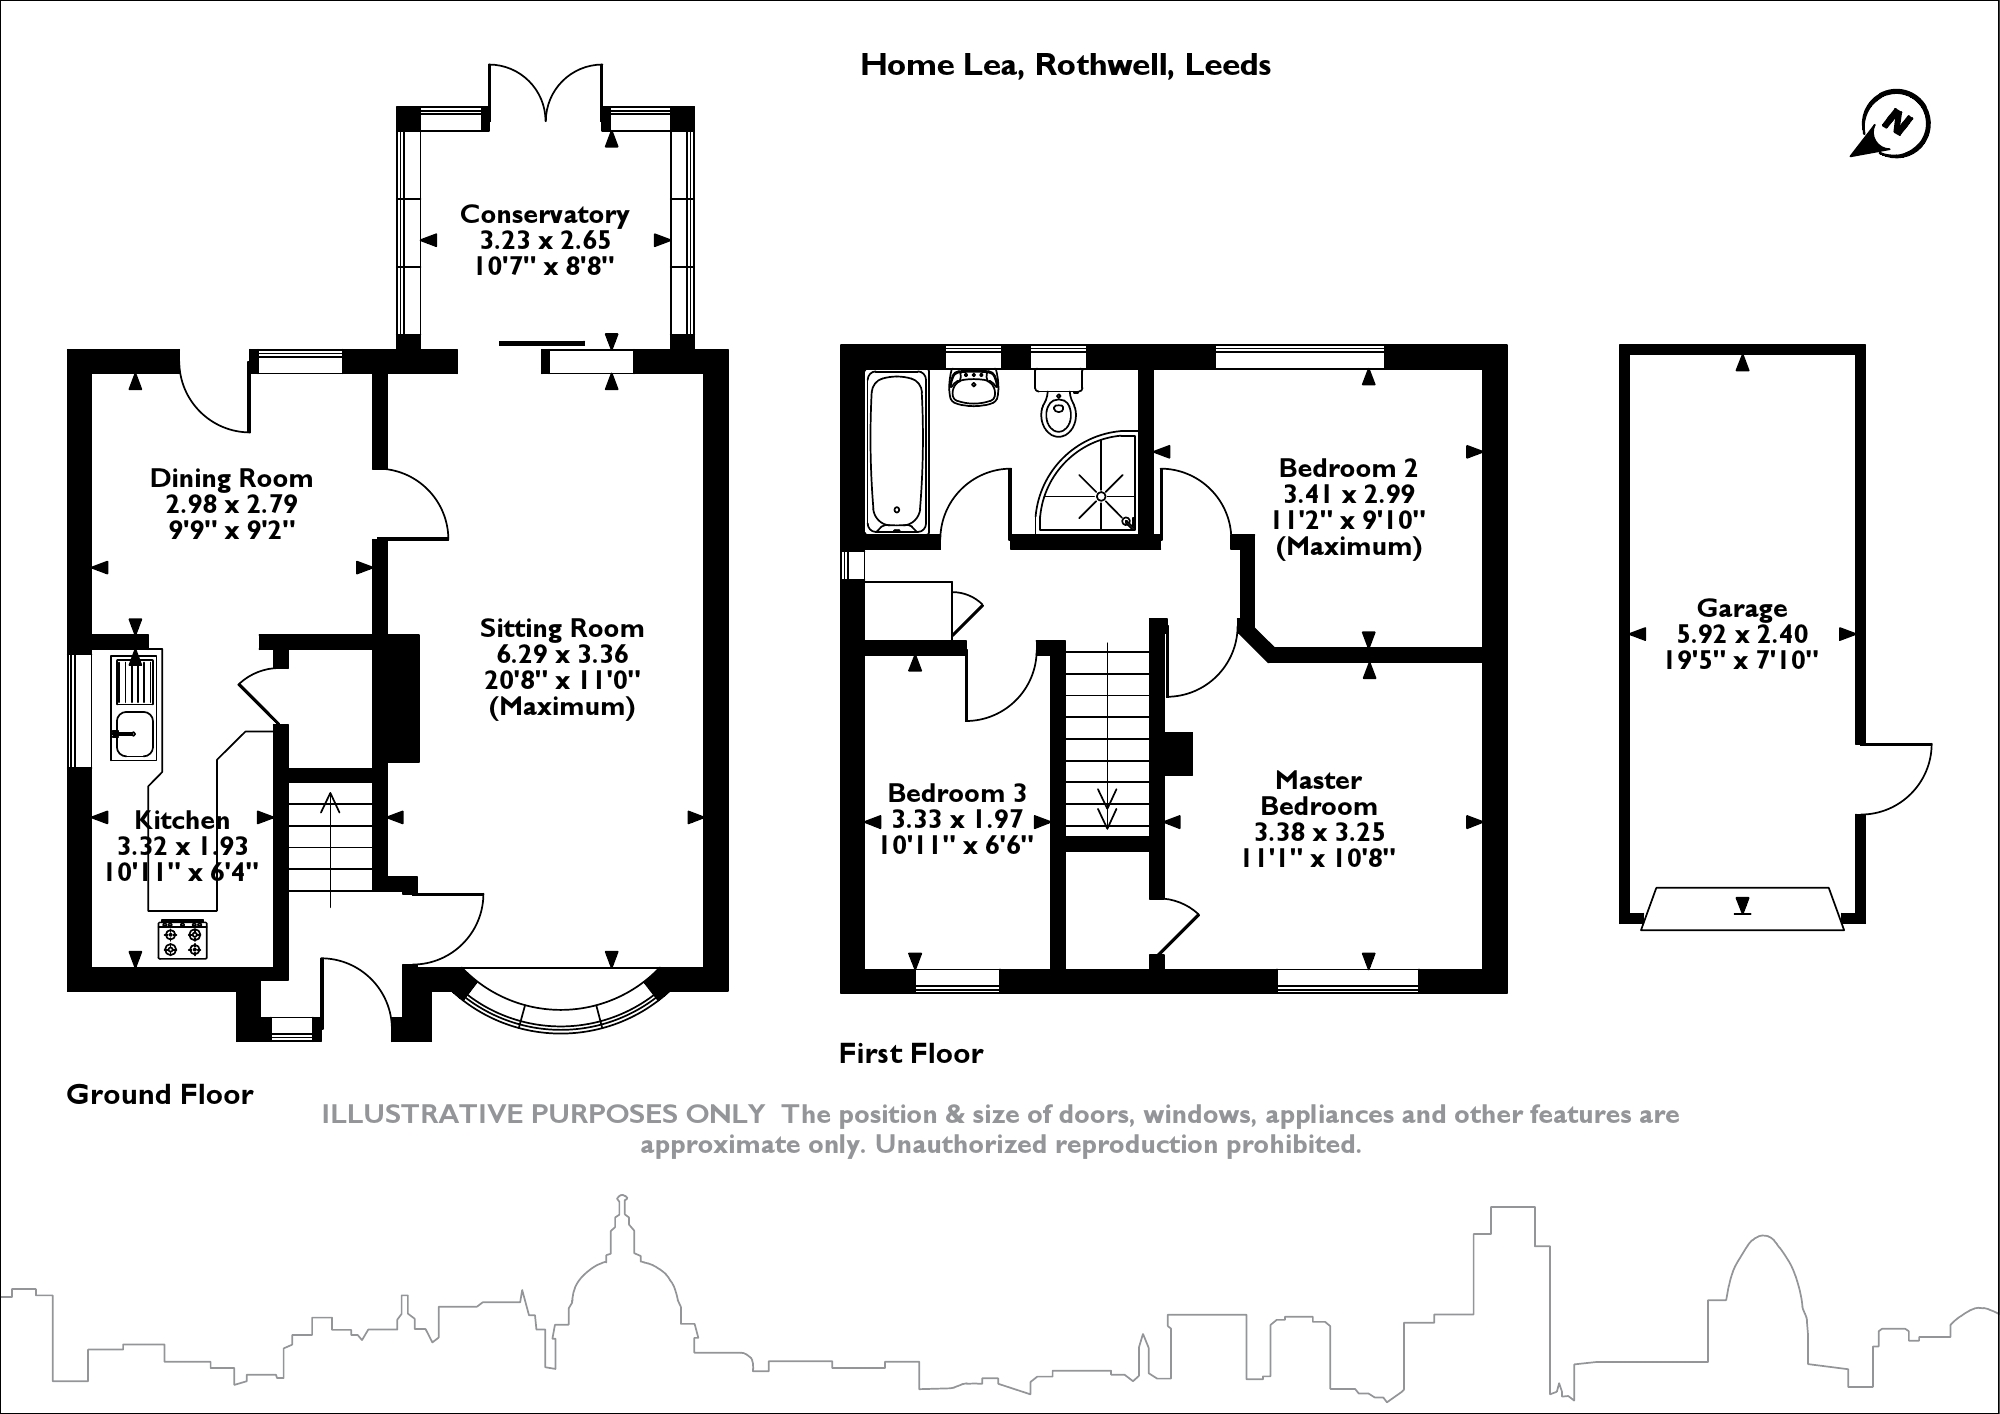 Home Lea, Leeds floor plan